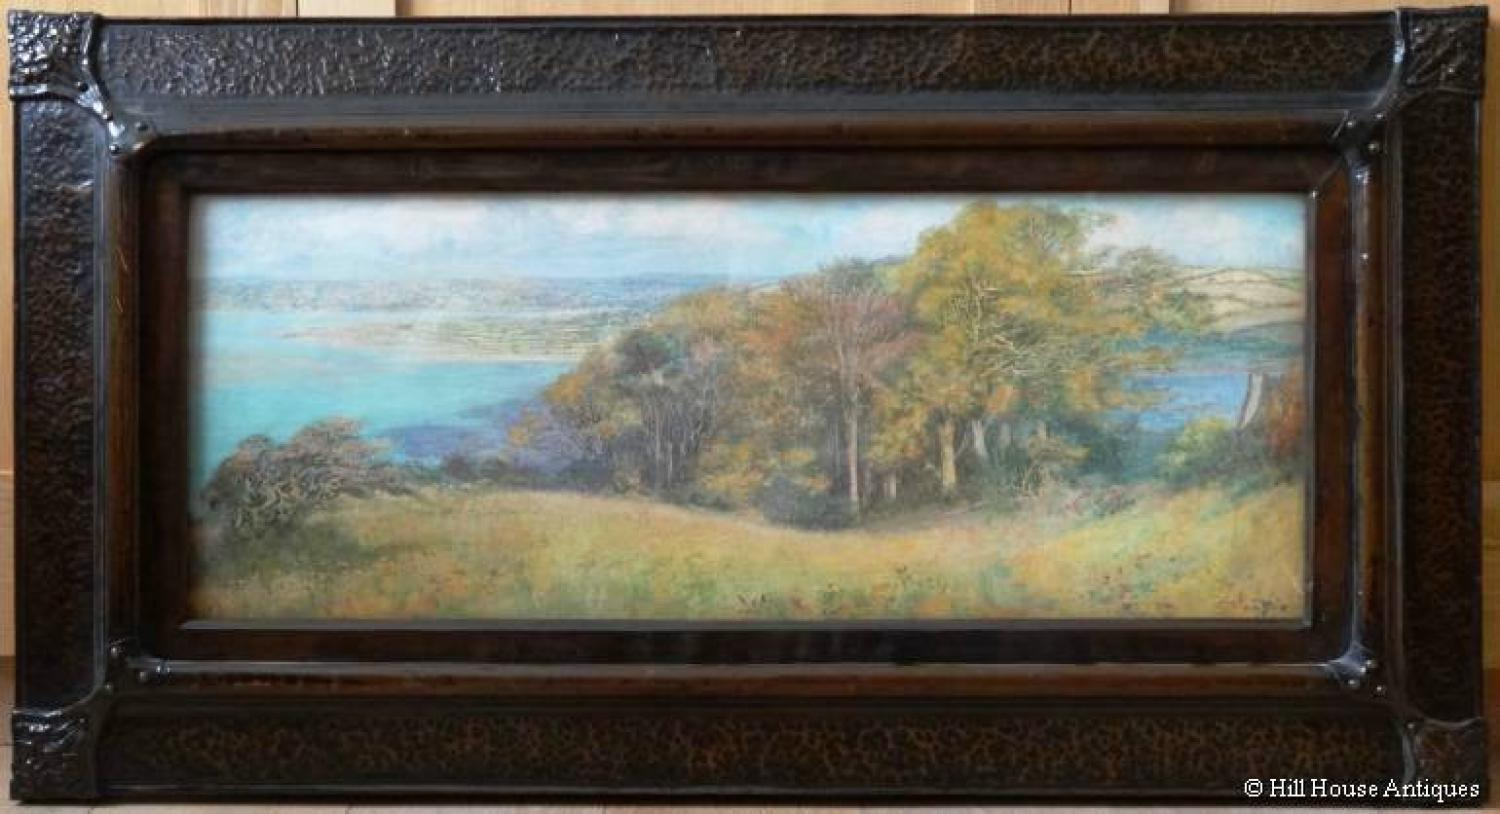 Edward Steel Harper Arts & Crafts frame paint